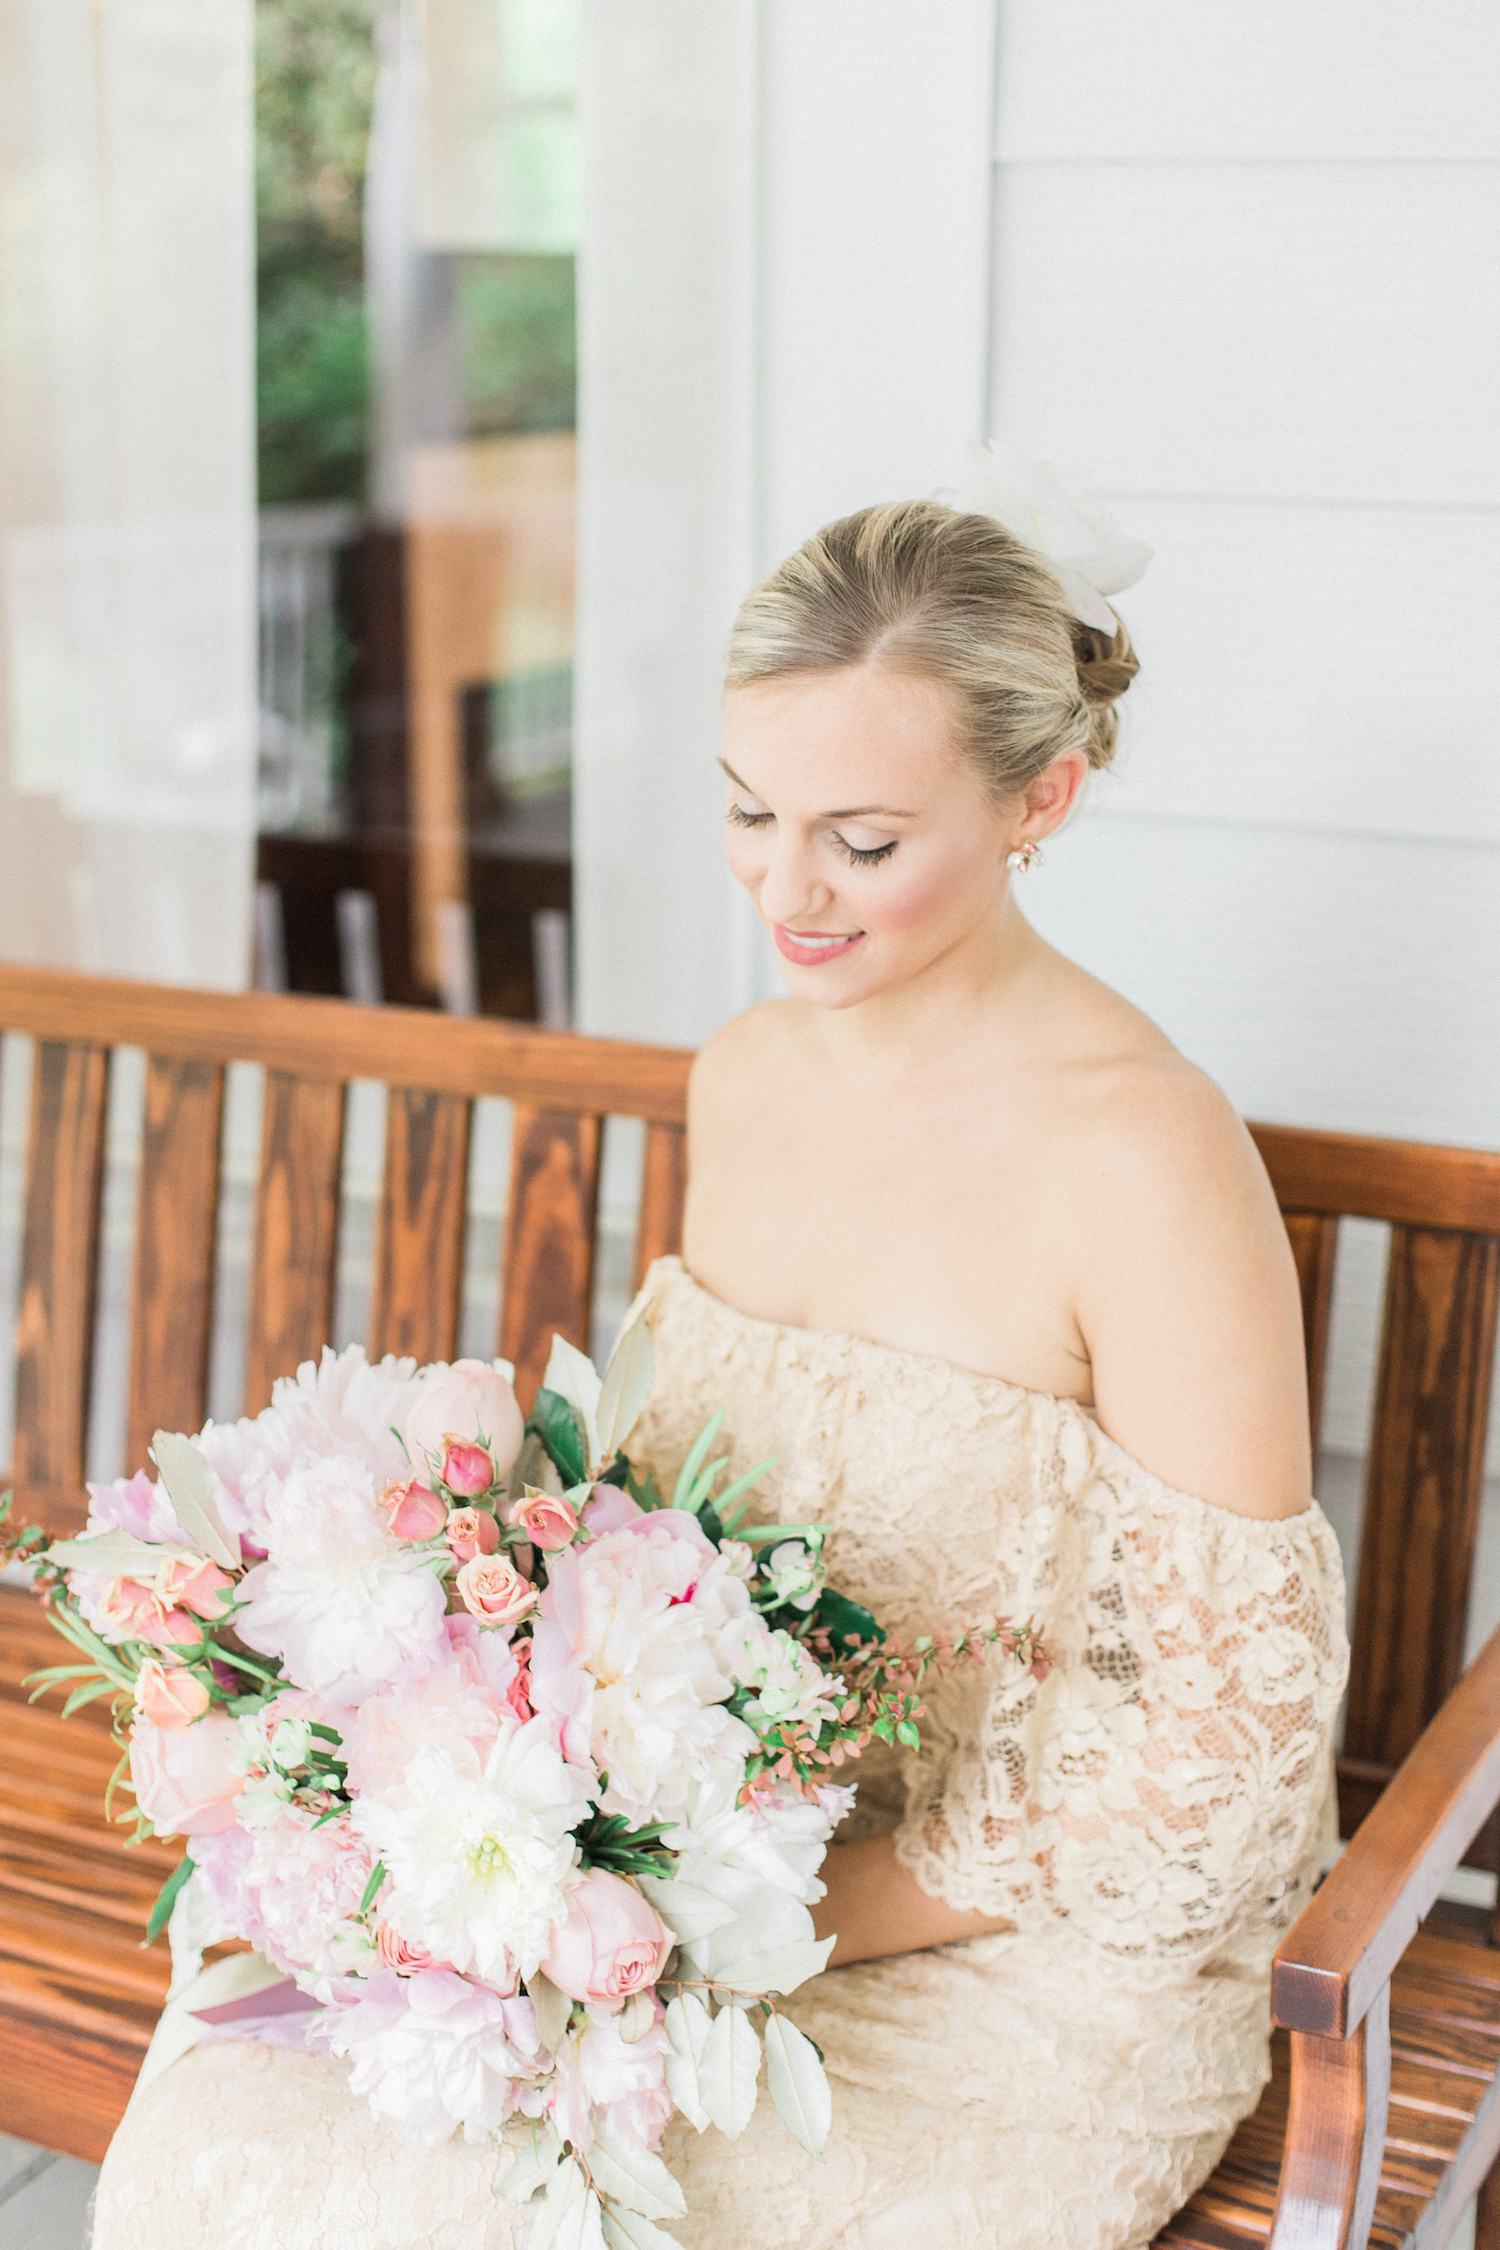 Pink mauve blush wedding bouquet. Off shoulder gold and lace wedding dress.